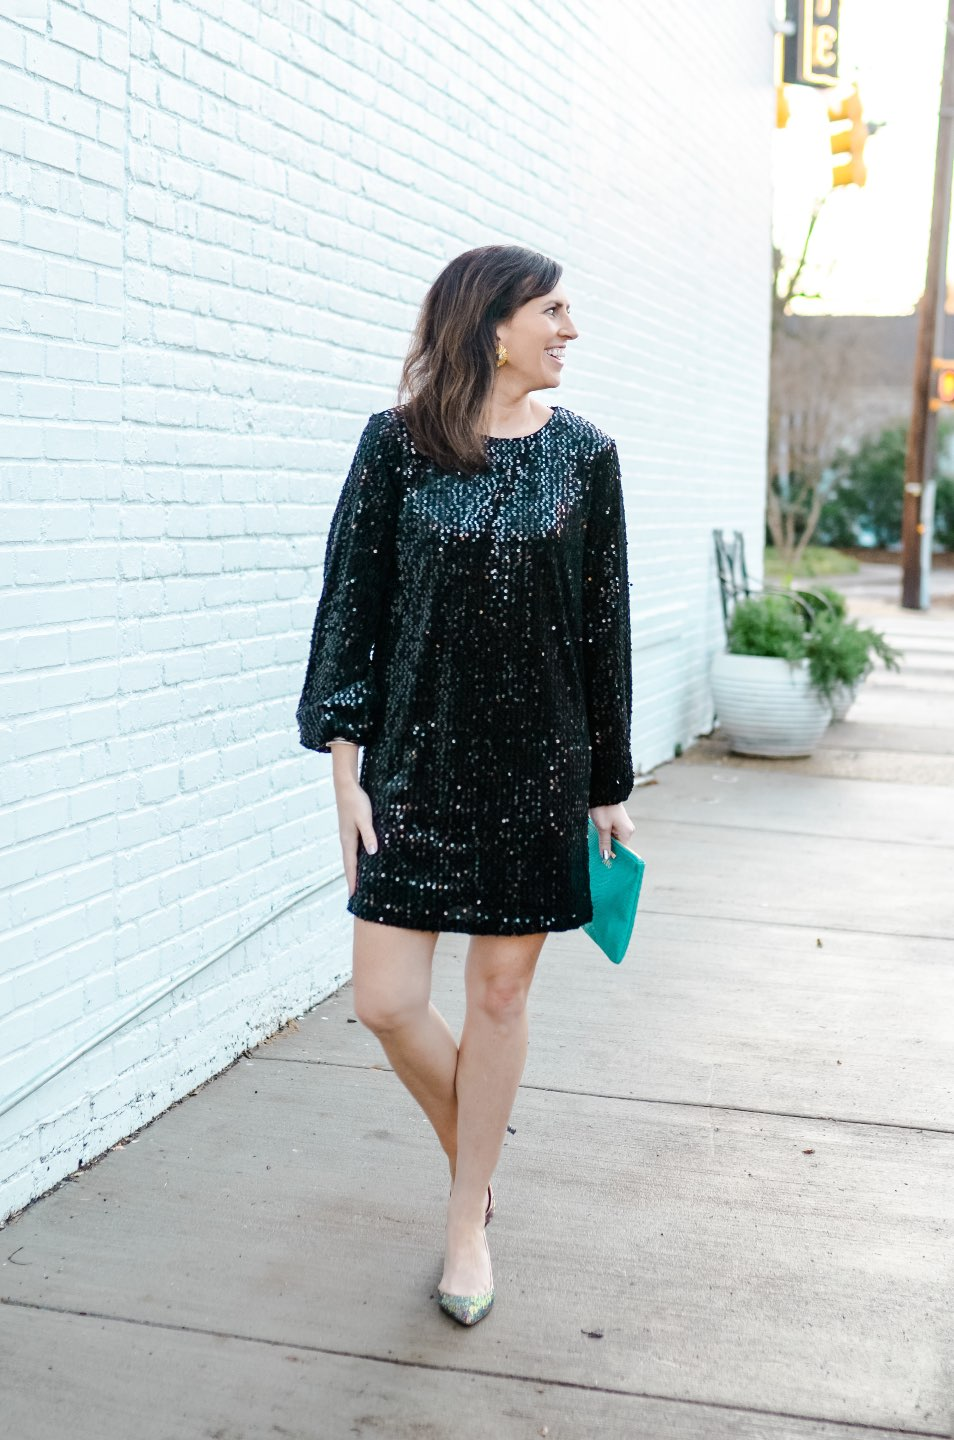 Holiday Style and Outfit Inspiration - I'm Fixin' To - @mbg0112 | Holiday Style and Outfit Inspiration by popular North Carolina fashion blog, I'm Fixin' To: image of a woman wearing a 5th and Franklin Glam & Glitz Dress, J. Crew Colette d'Orsay pumps in holographic glitter, Hunter Blake THE POPPY earrings, and Gigi New York ALL IN ONE BAG.